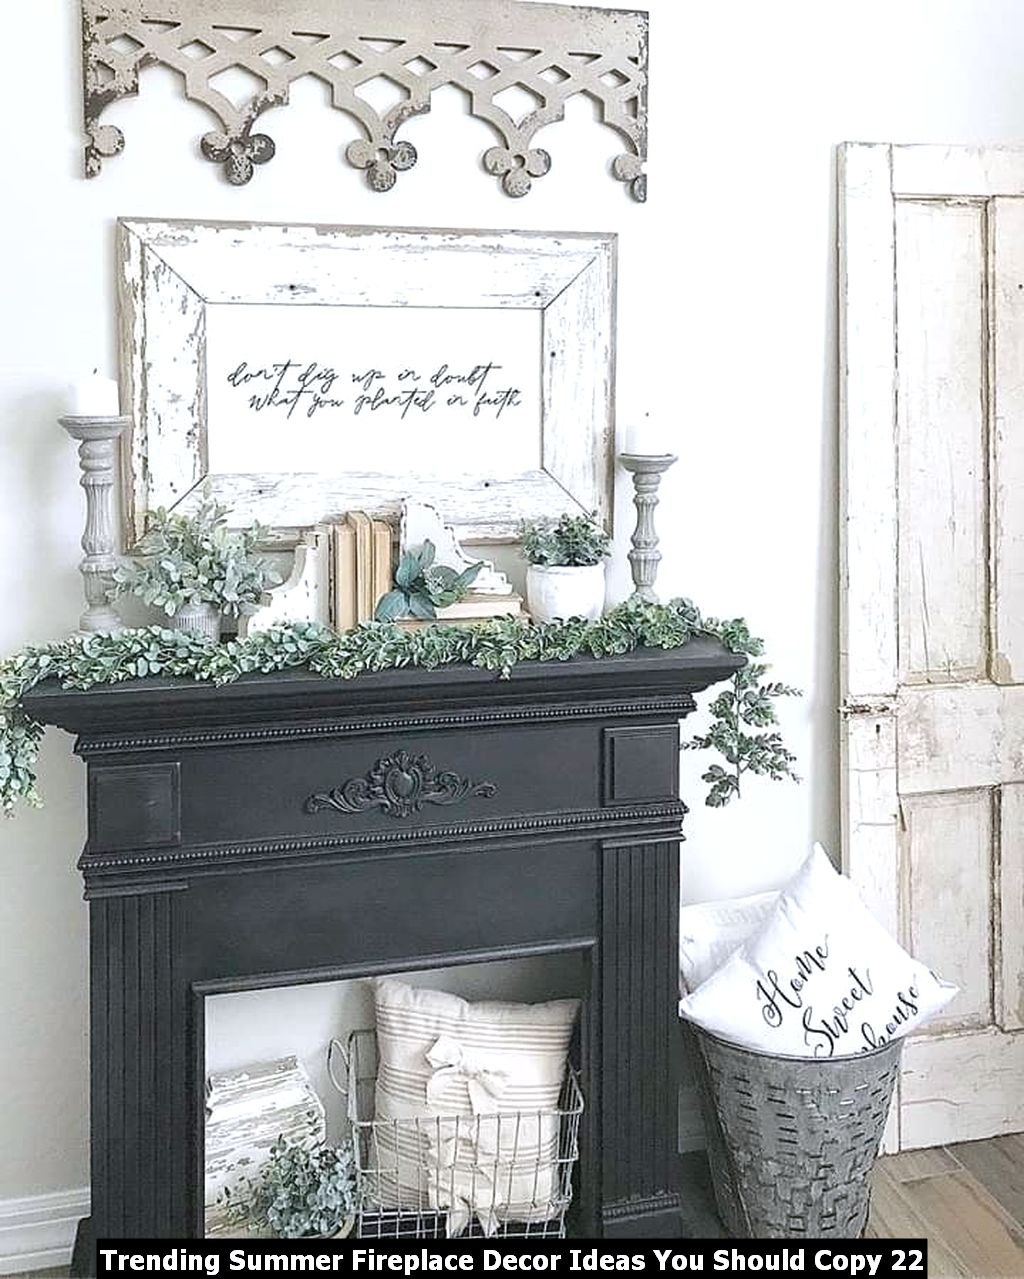 Trending Summer Fireplace Decor Ideas You Should Copy 22